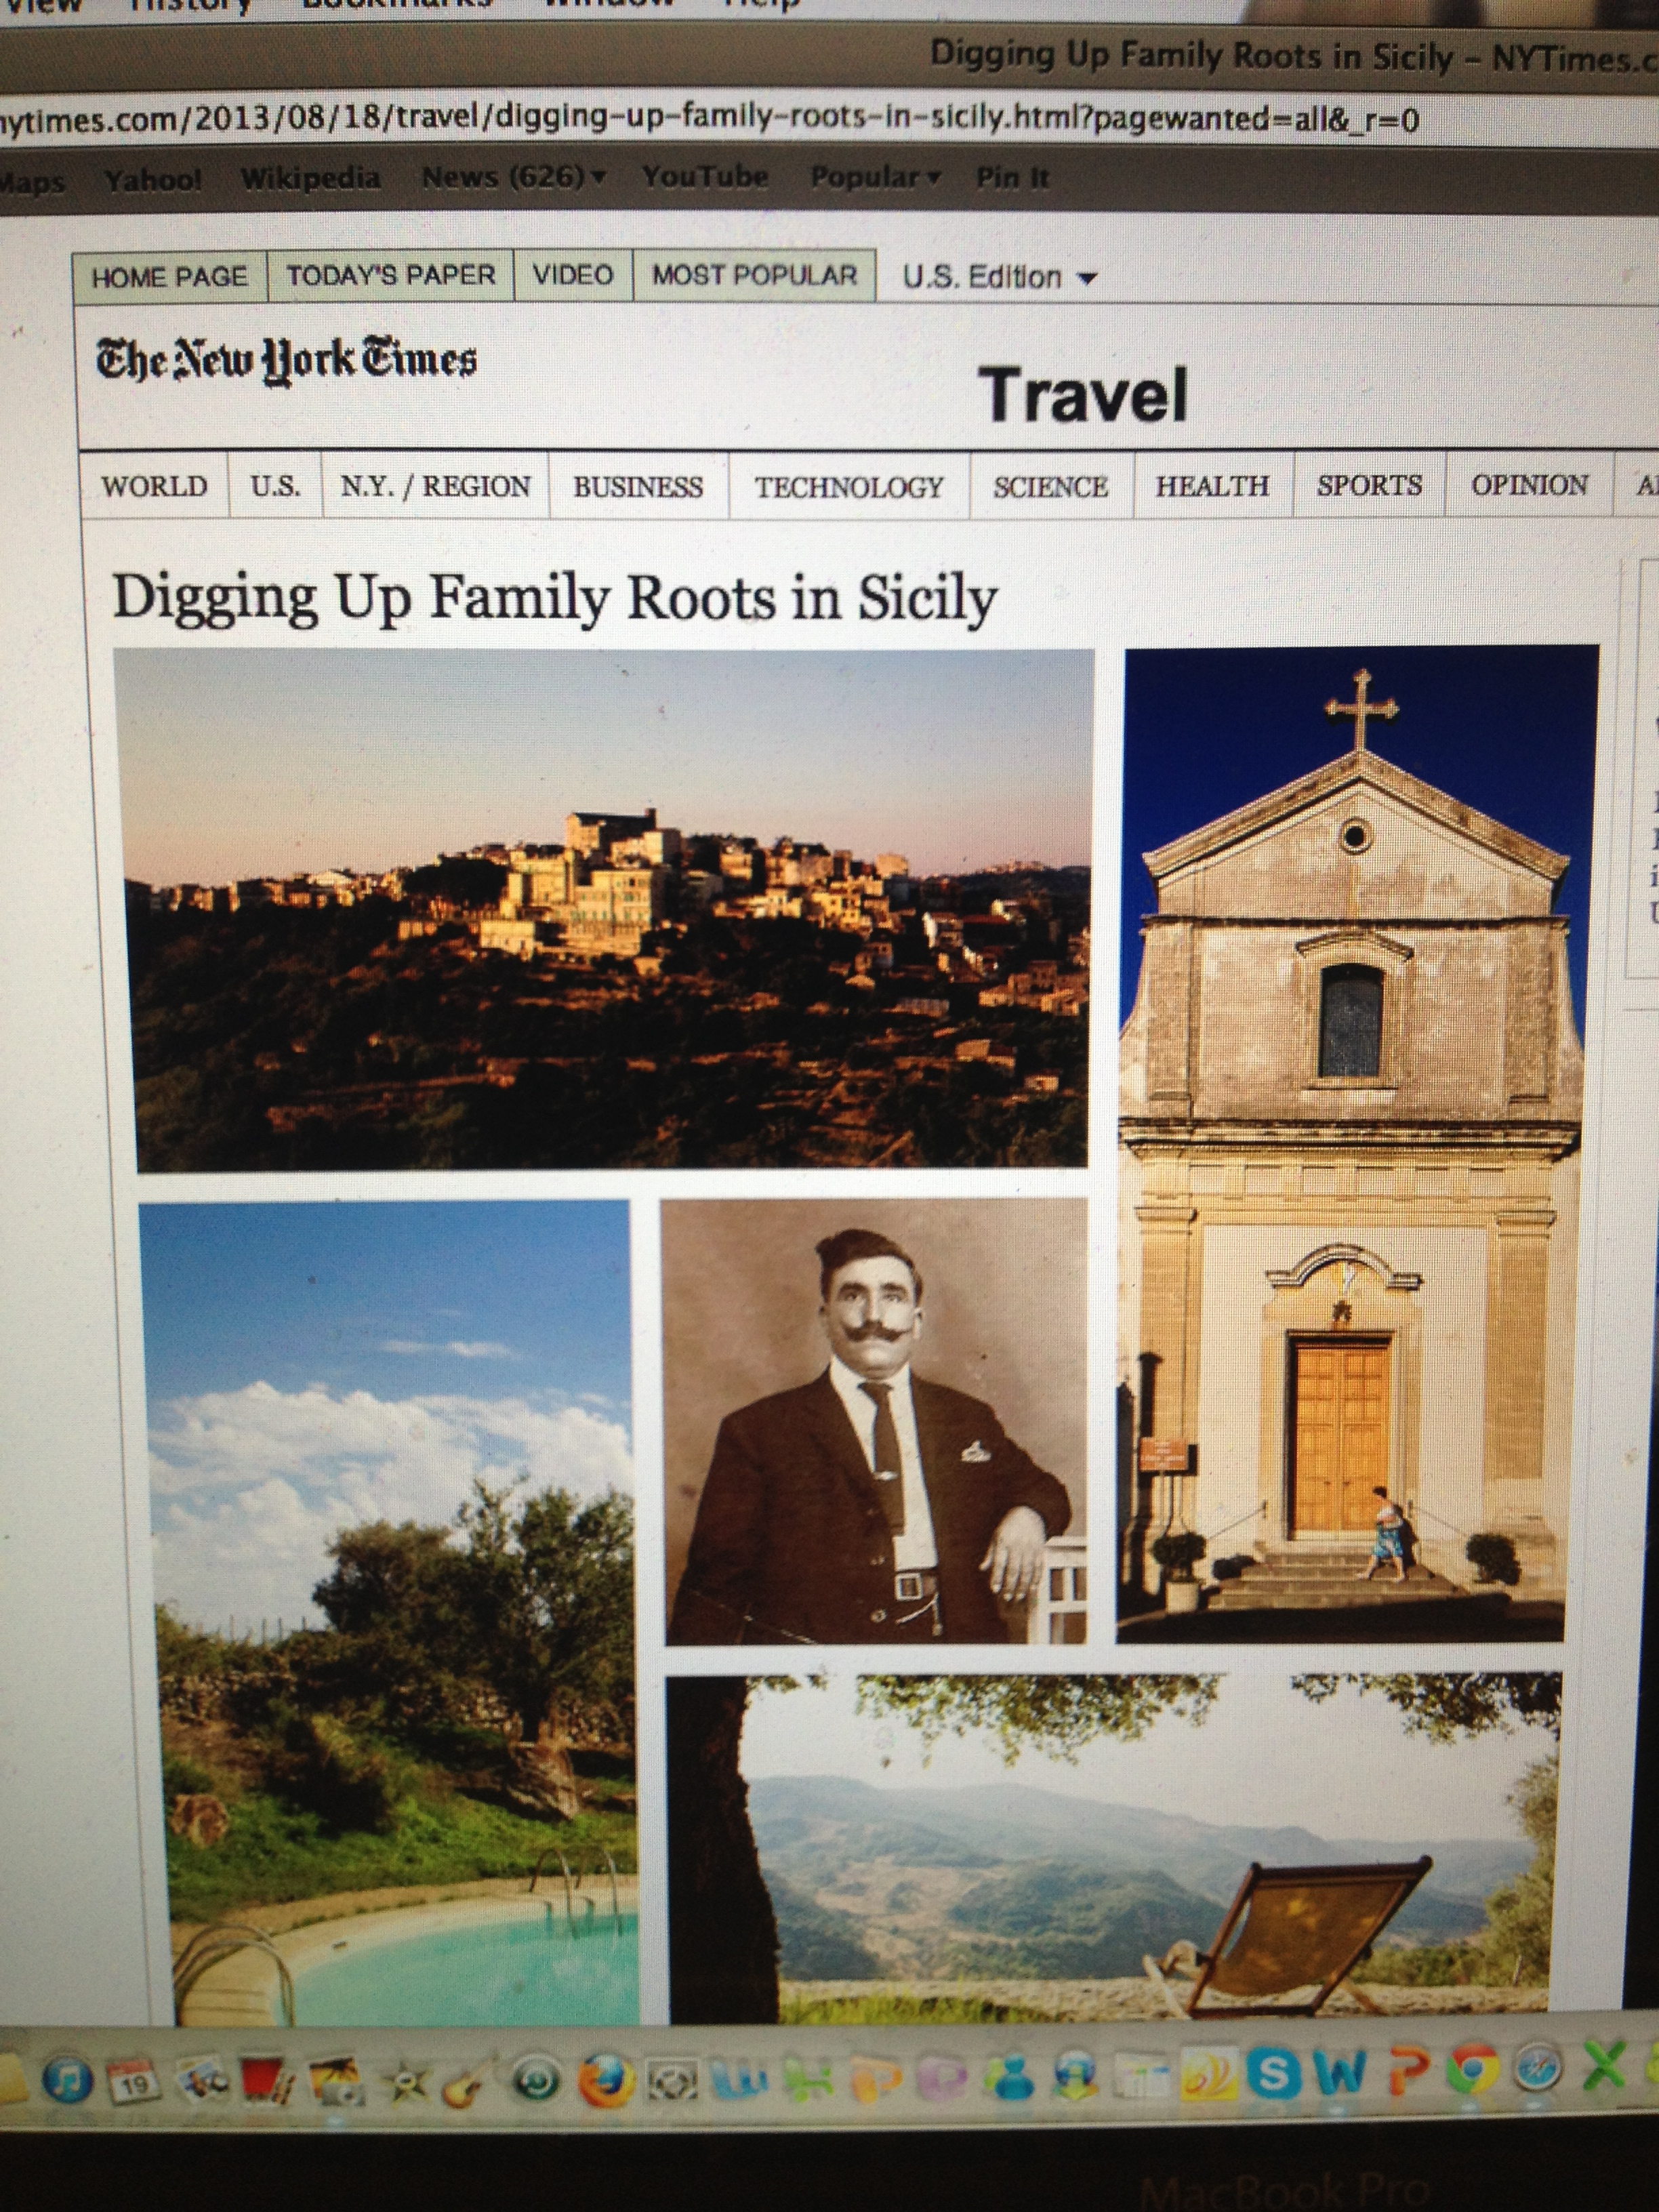 Belated Weekend Reading: The New York Times Travel